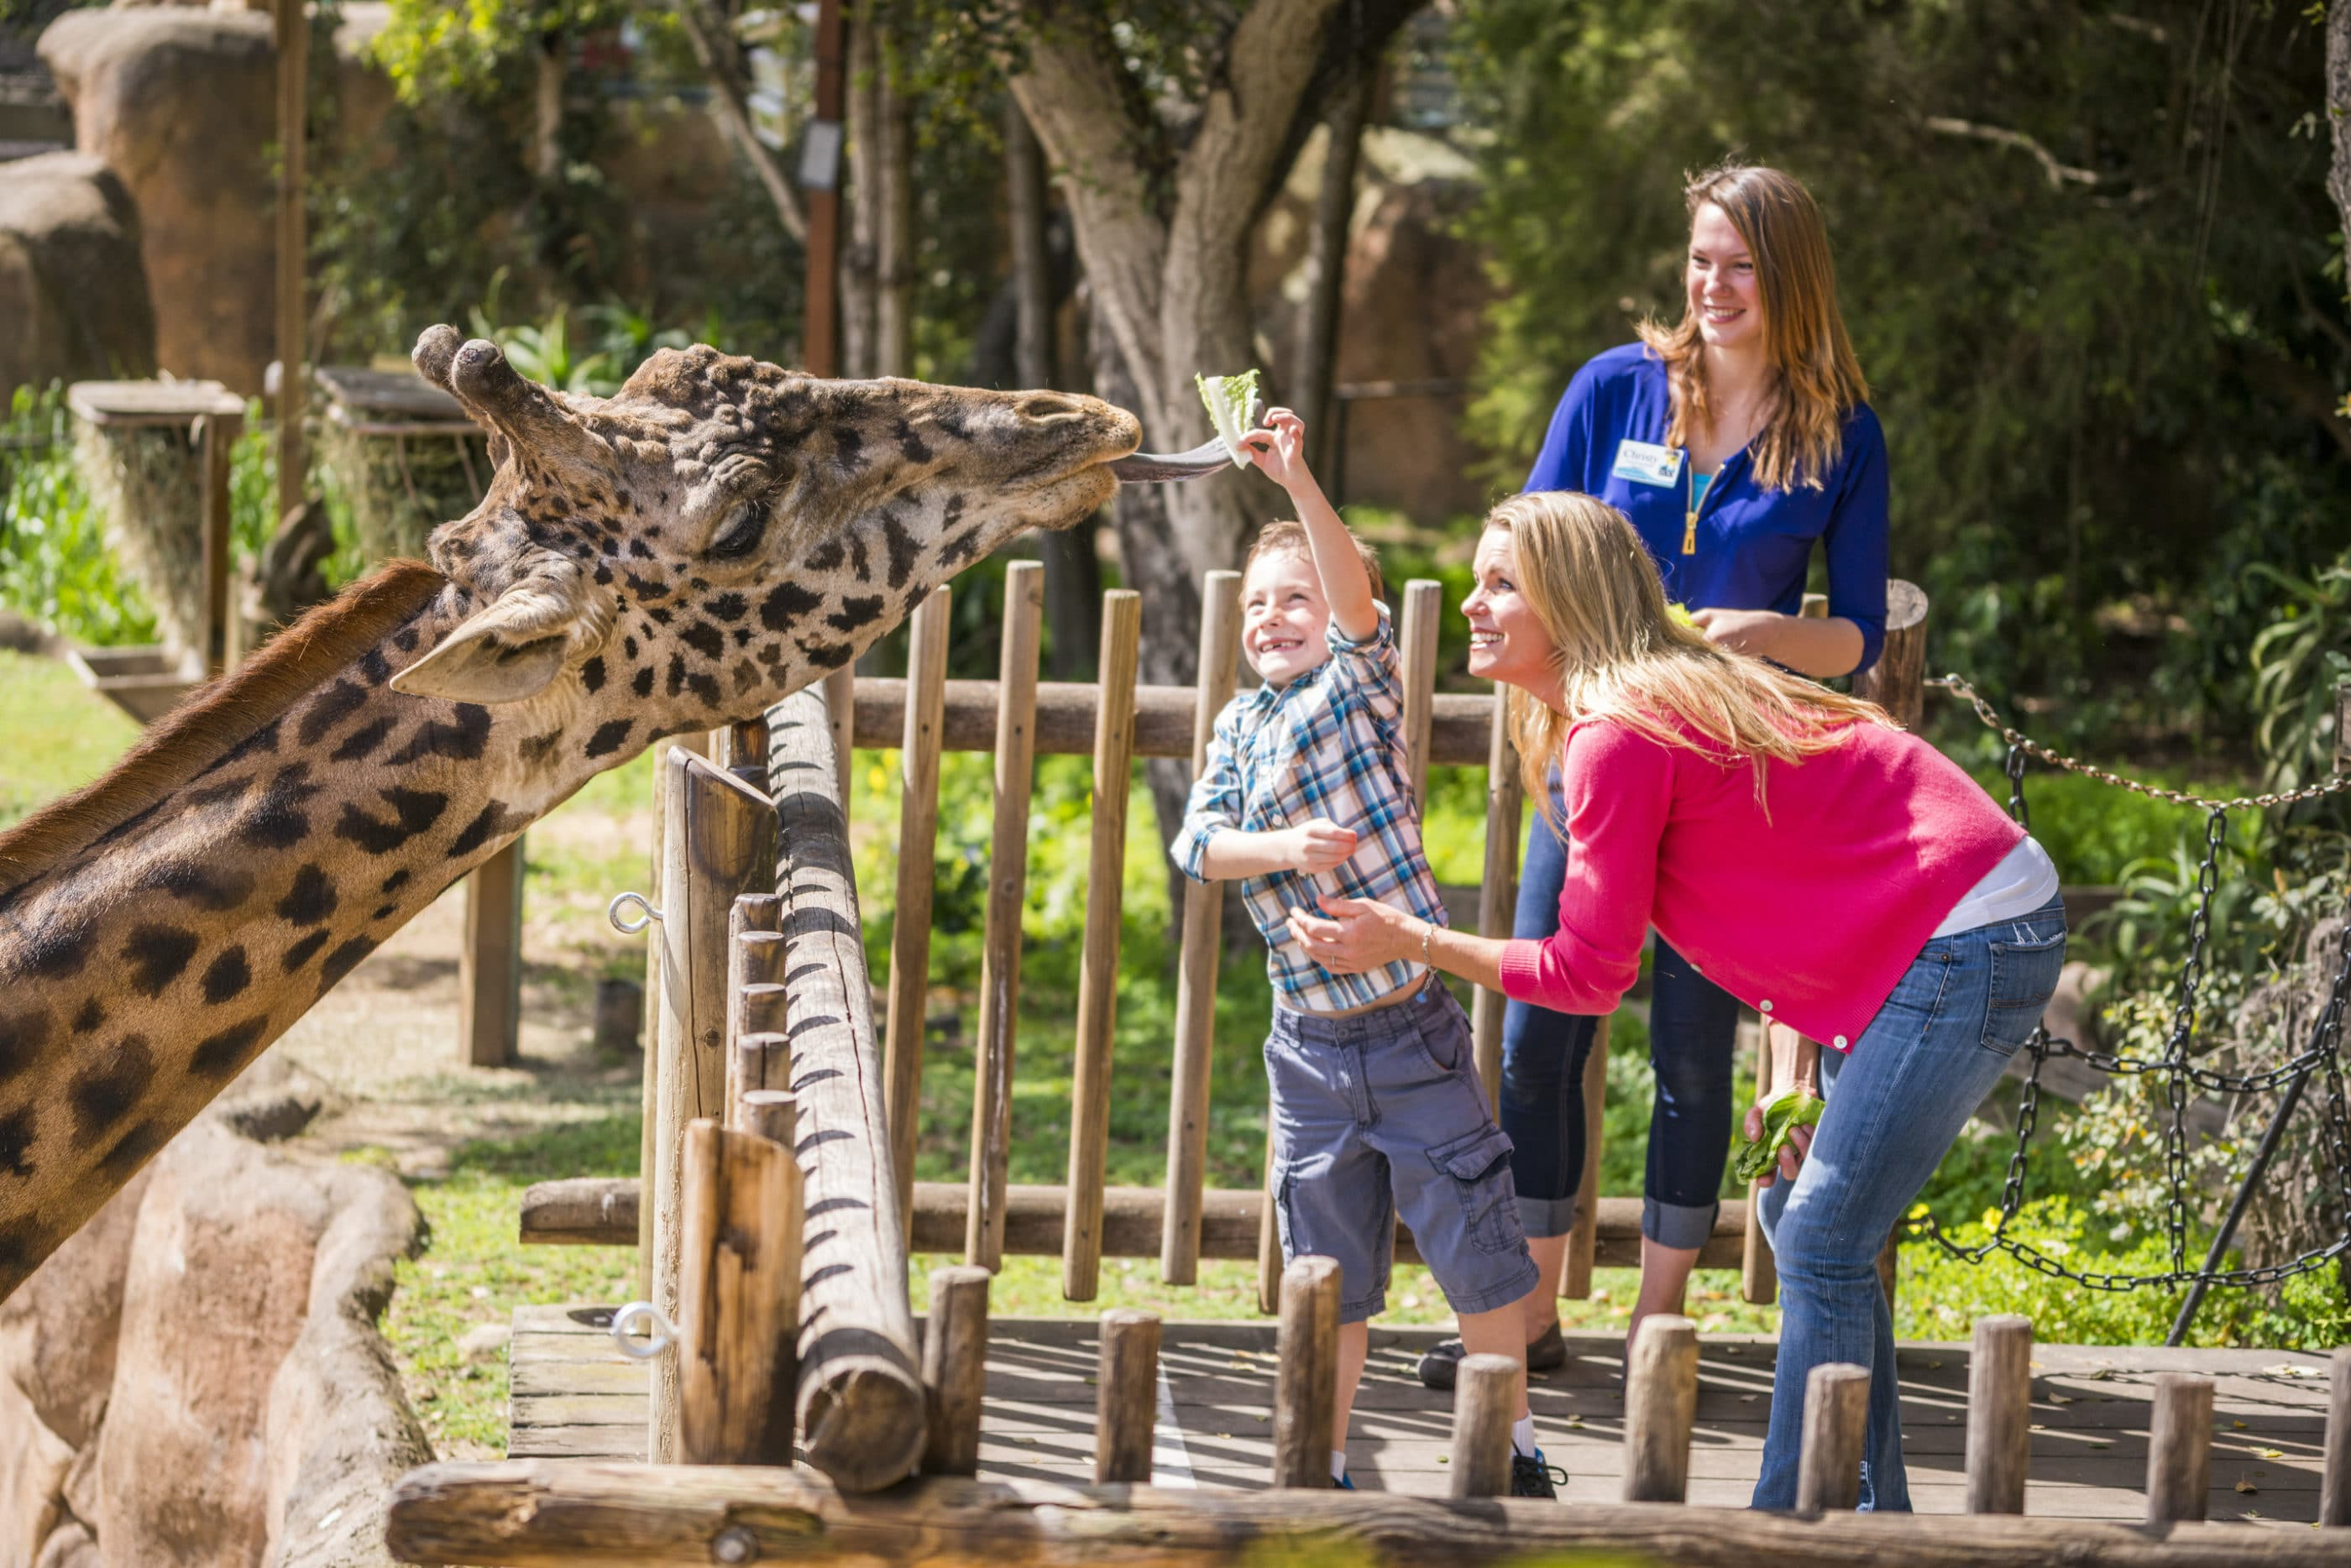 A little boy feeds a giraffe lettuce at the Santa Barbara Zoo.